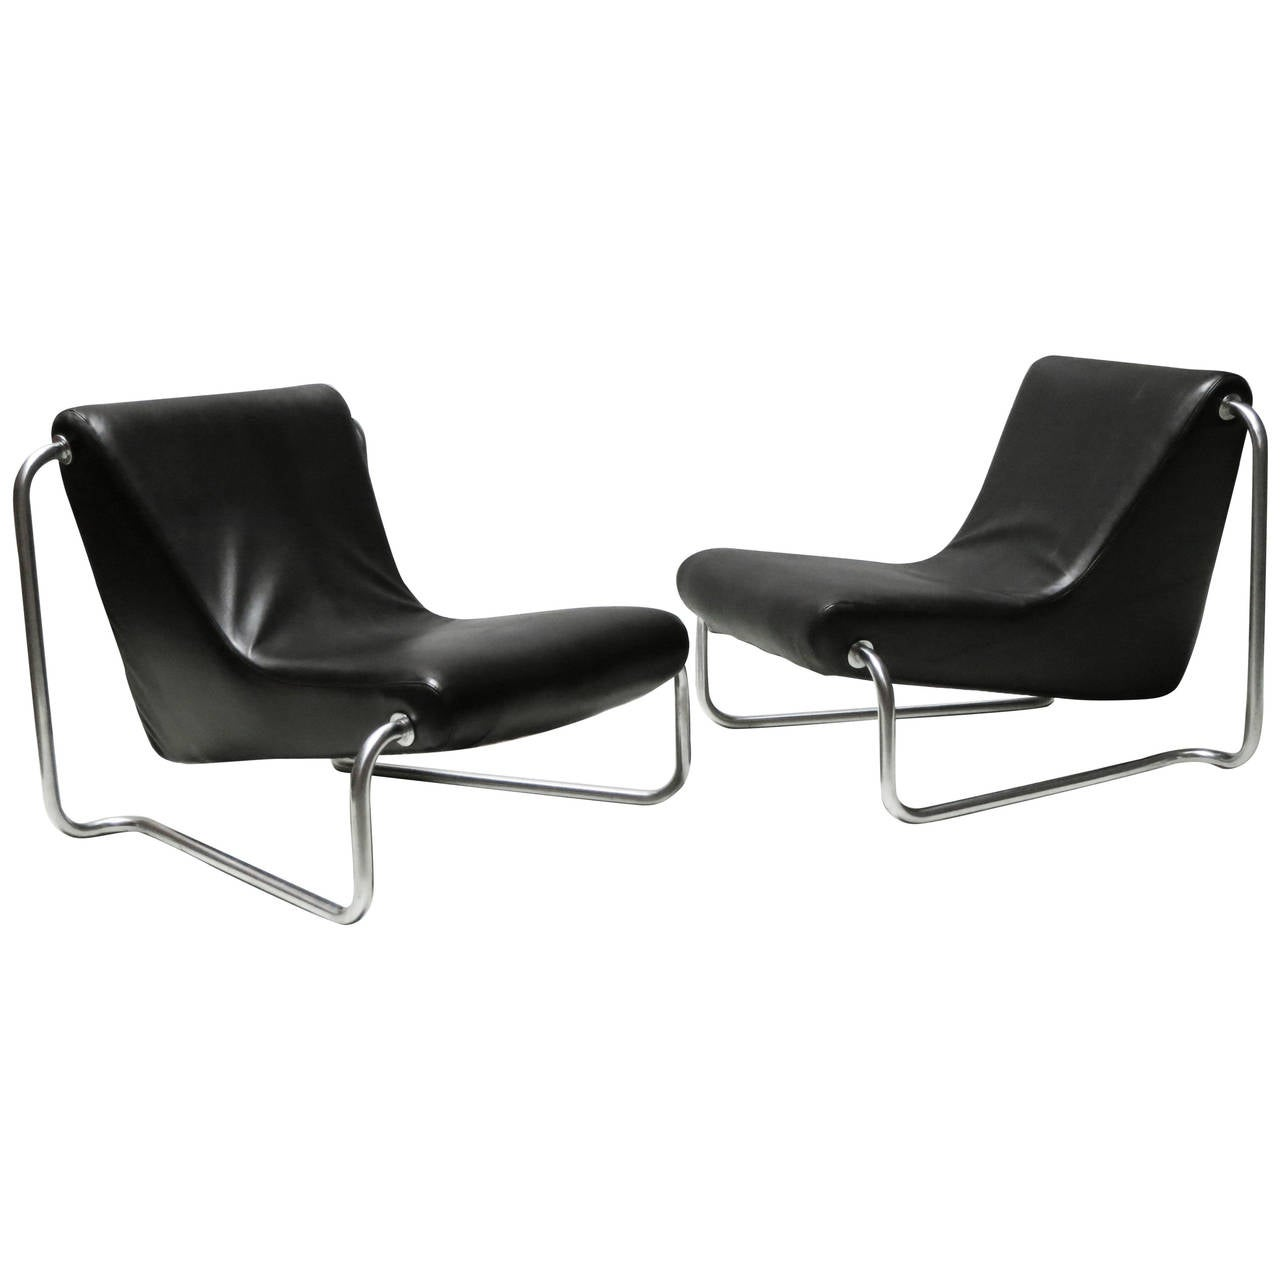 Pair of Leather and Steel 1970s Lounge Chairs by Luigi Colani for Fritz Hansen